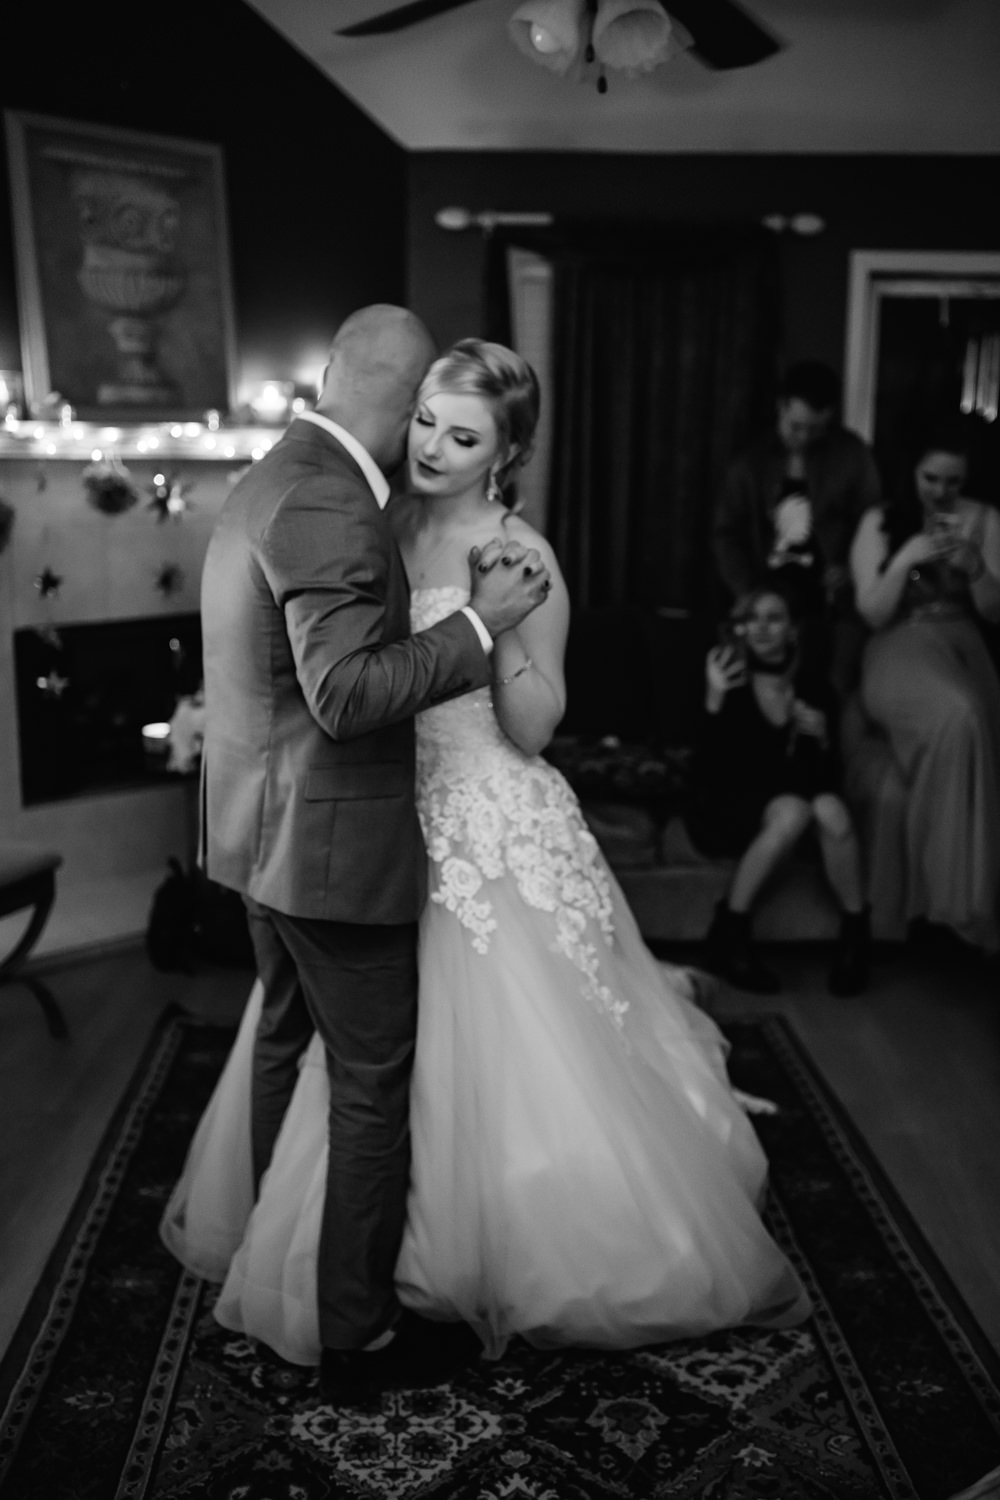 bride and groom black and white first dance romantic